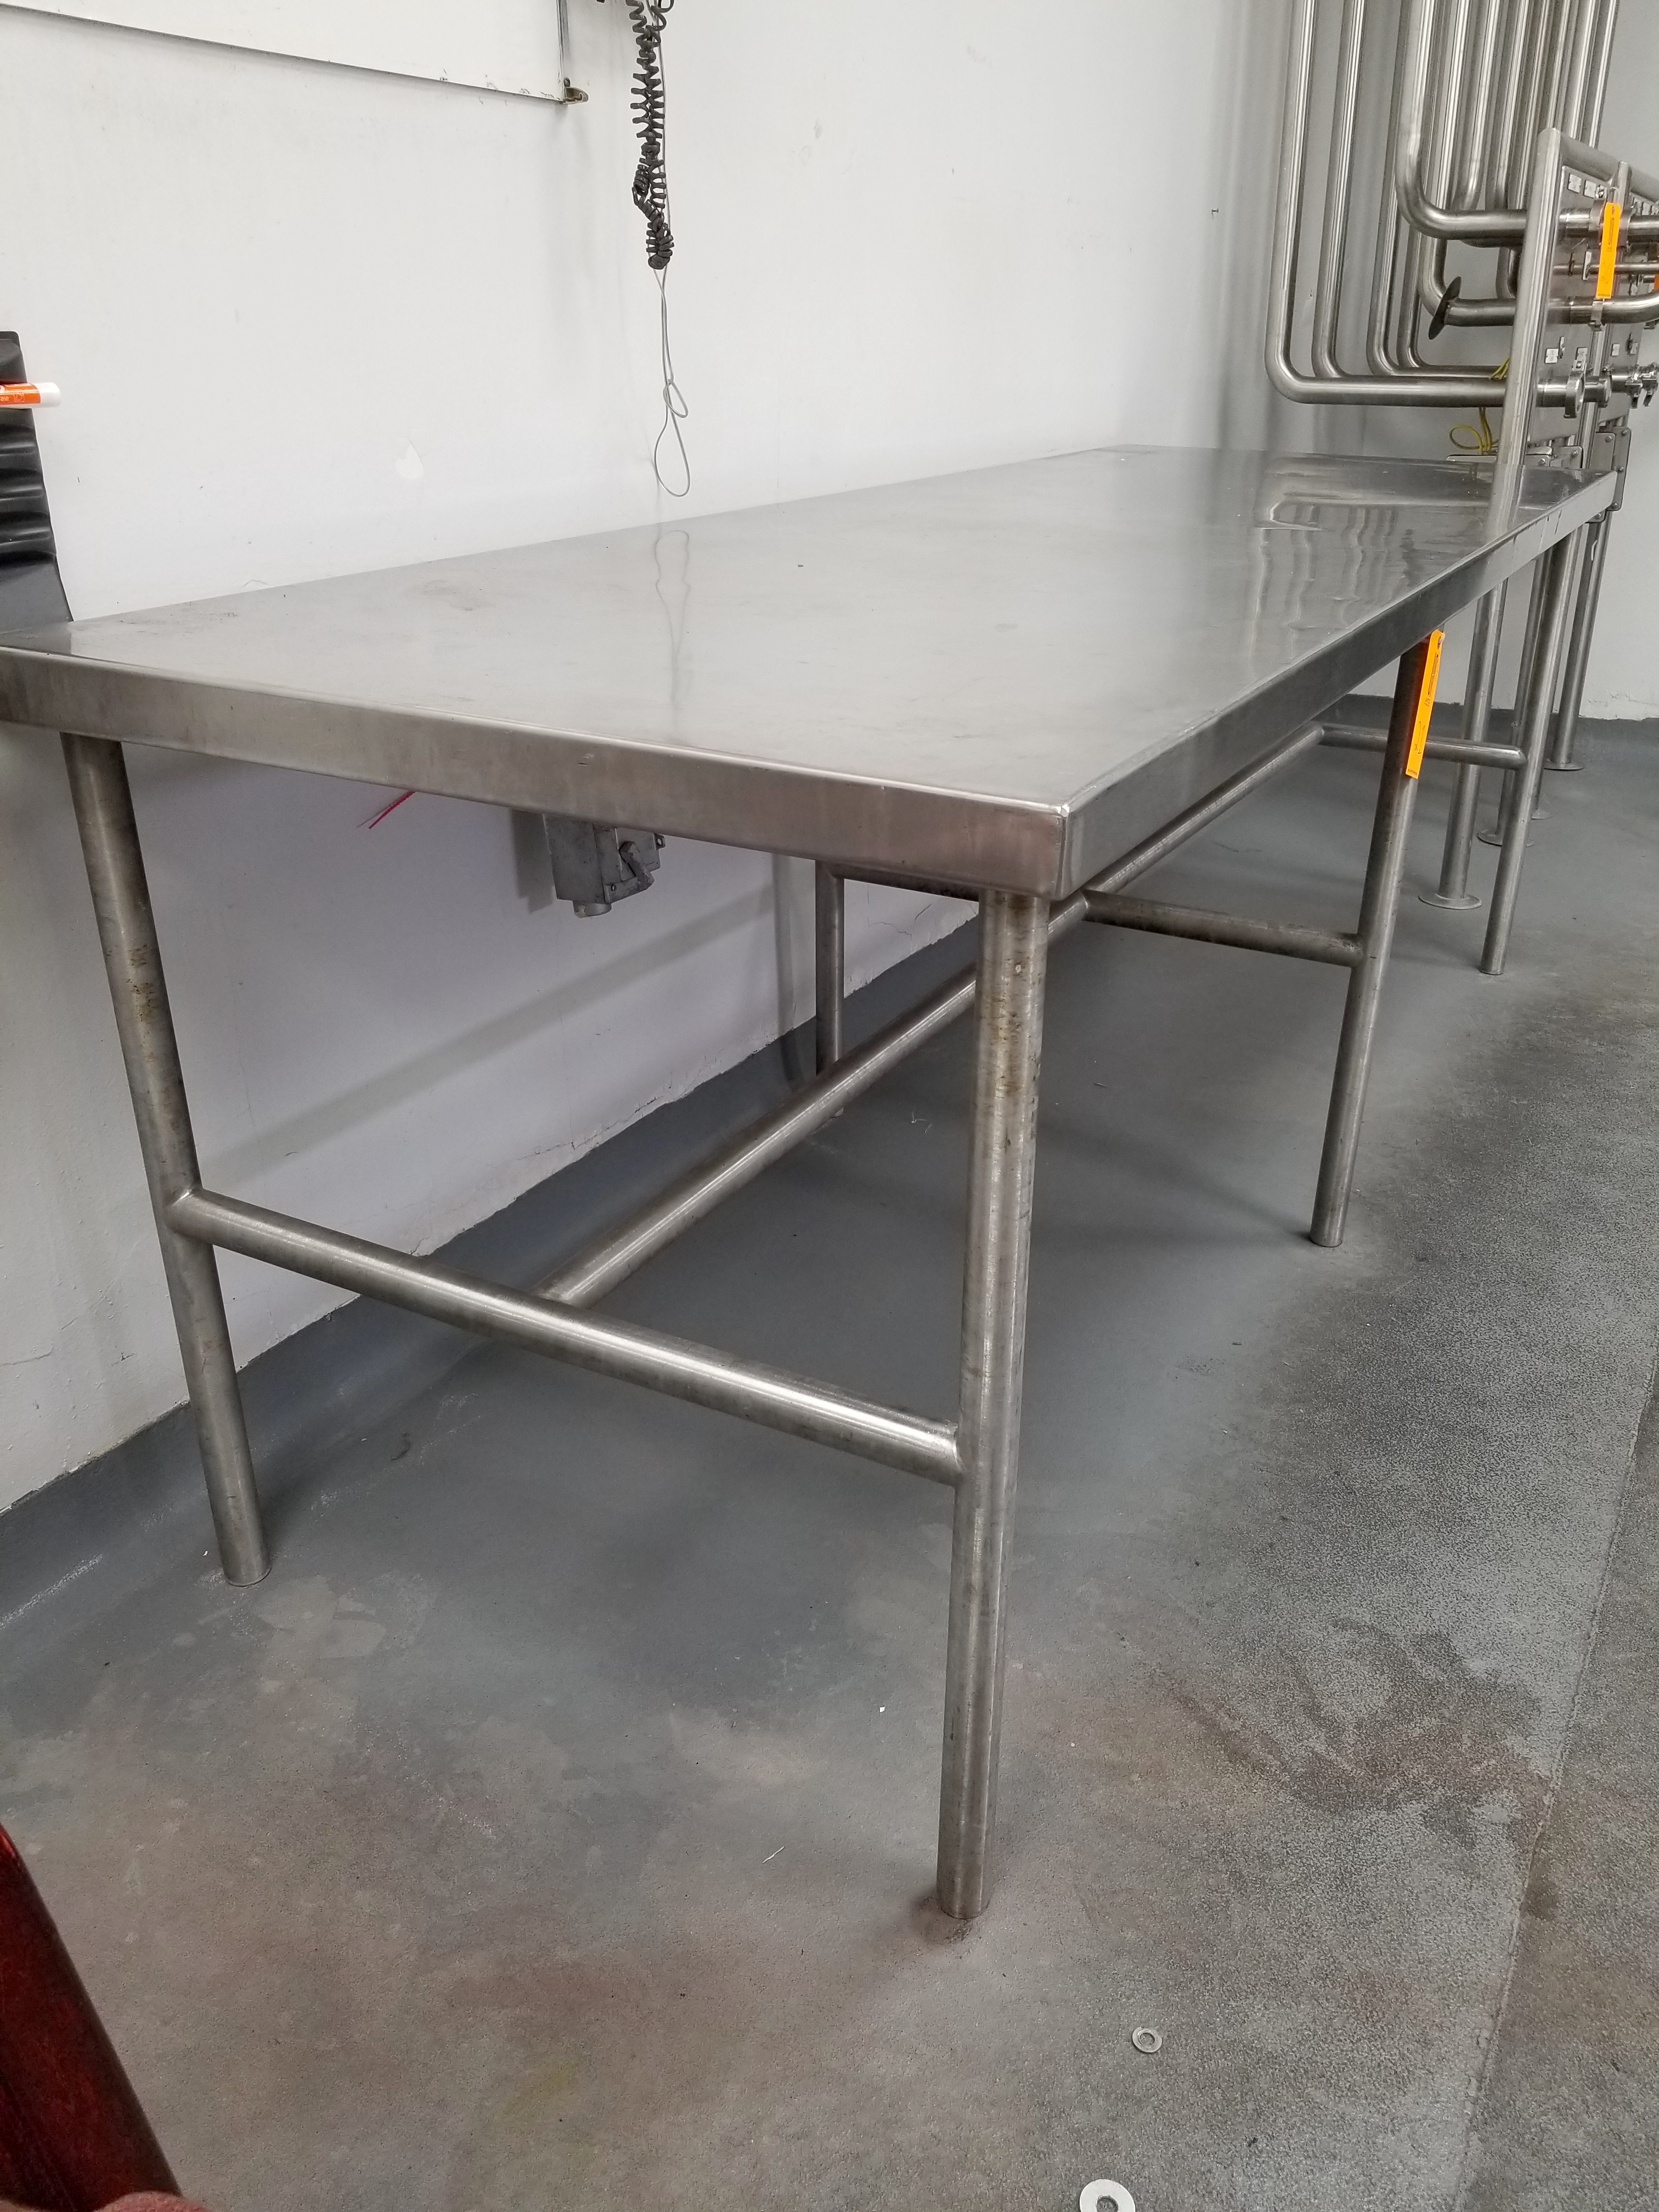 Stainless Steel Work Table - Image 2 of 2